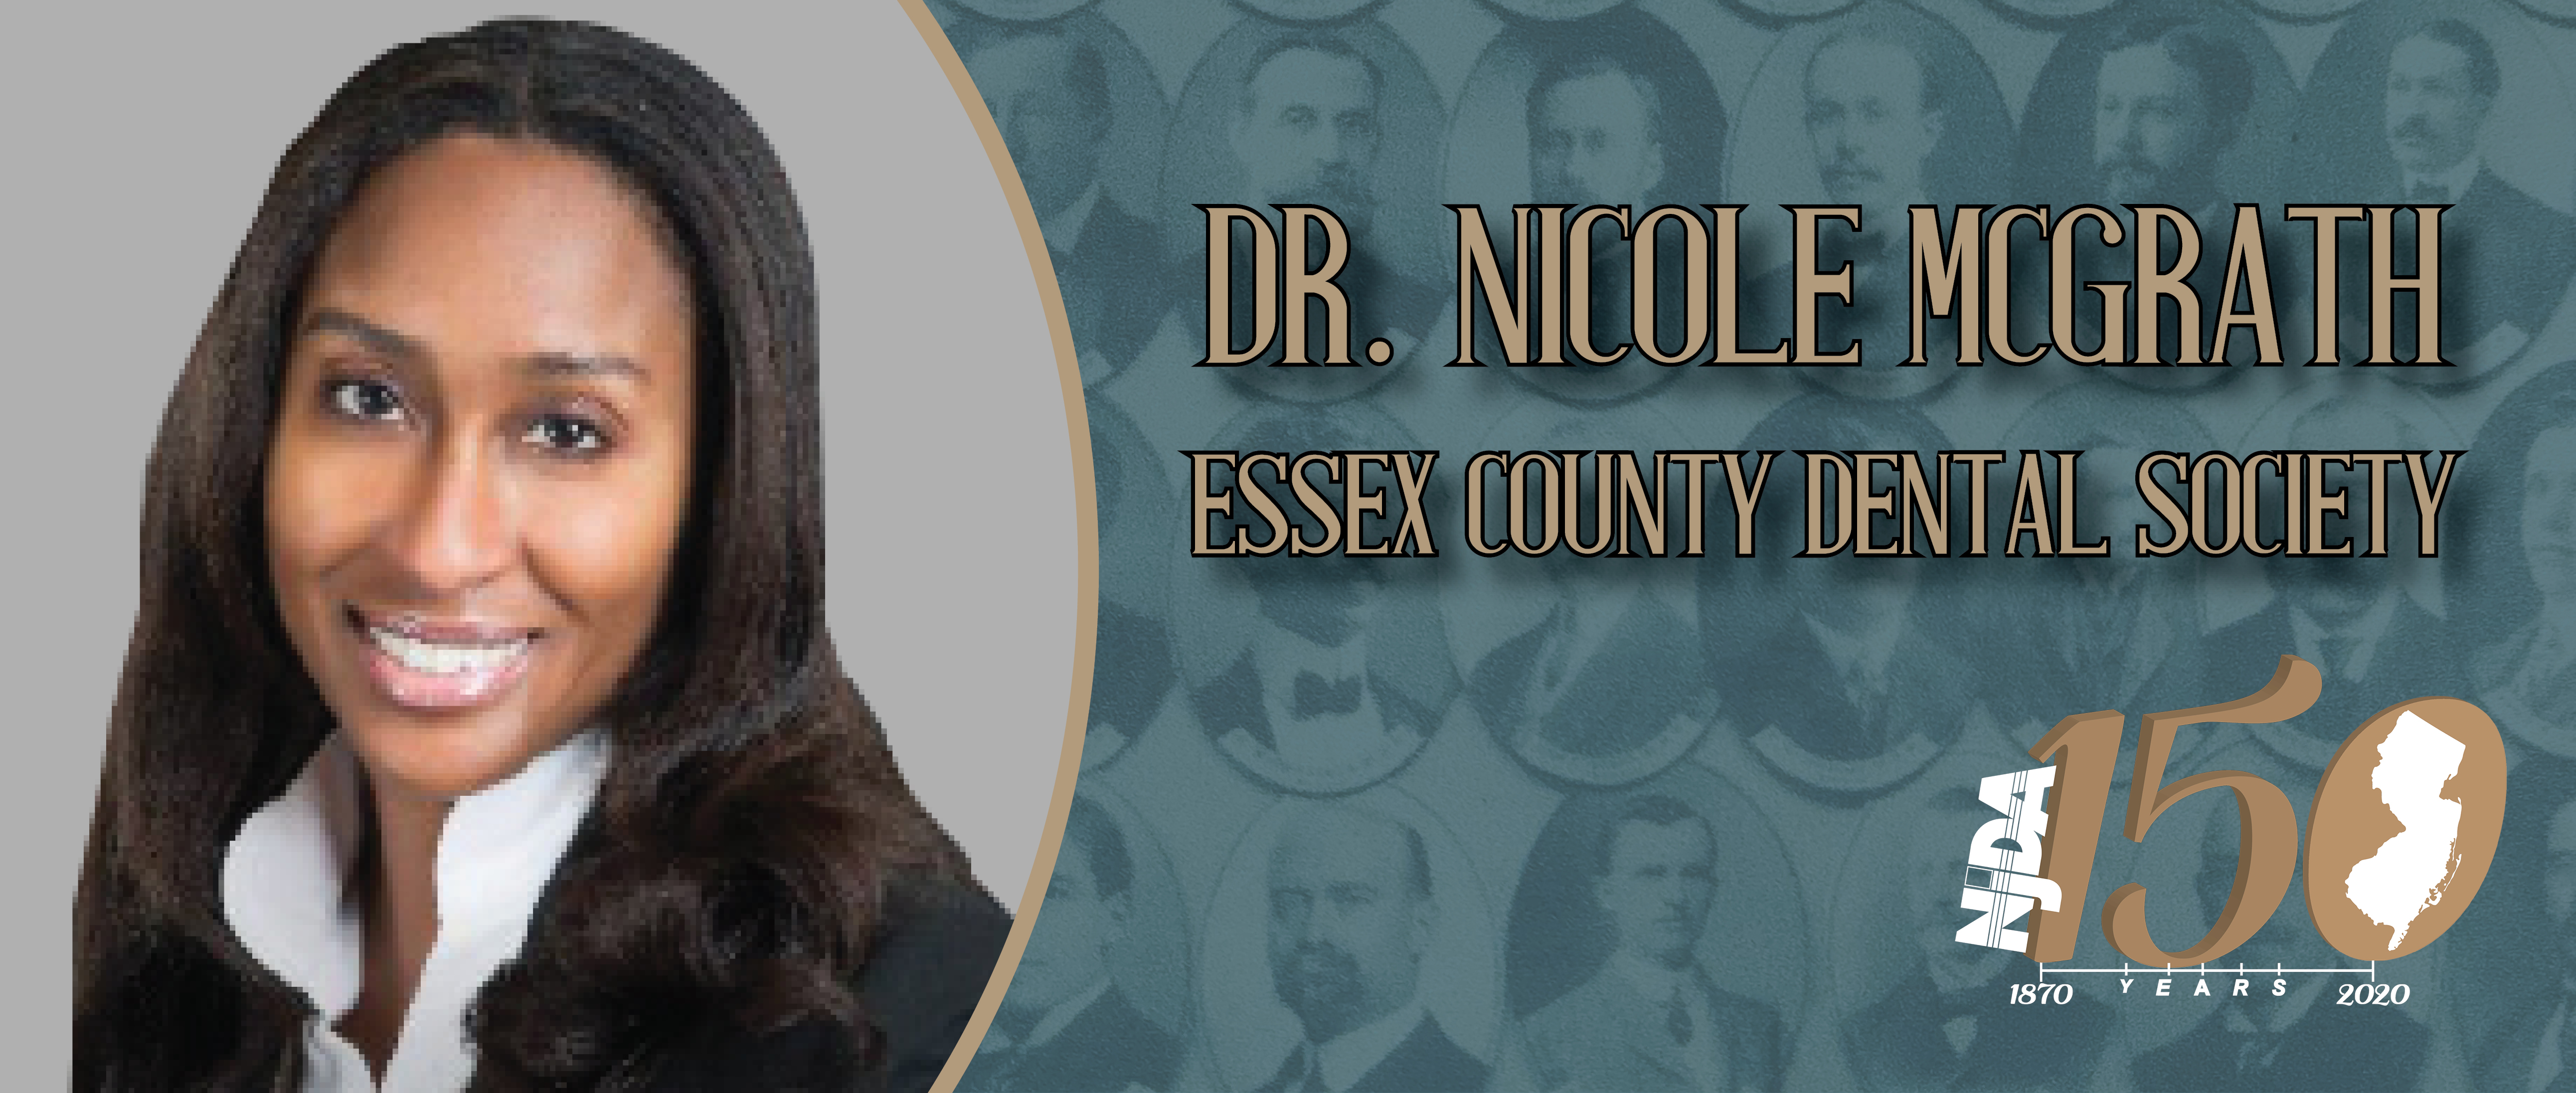 Dr. nicole mcgrath - 150th anniversary honoree